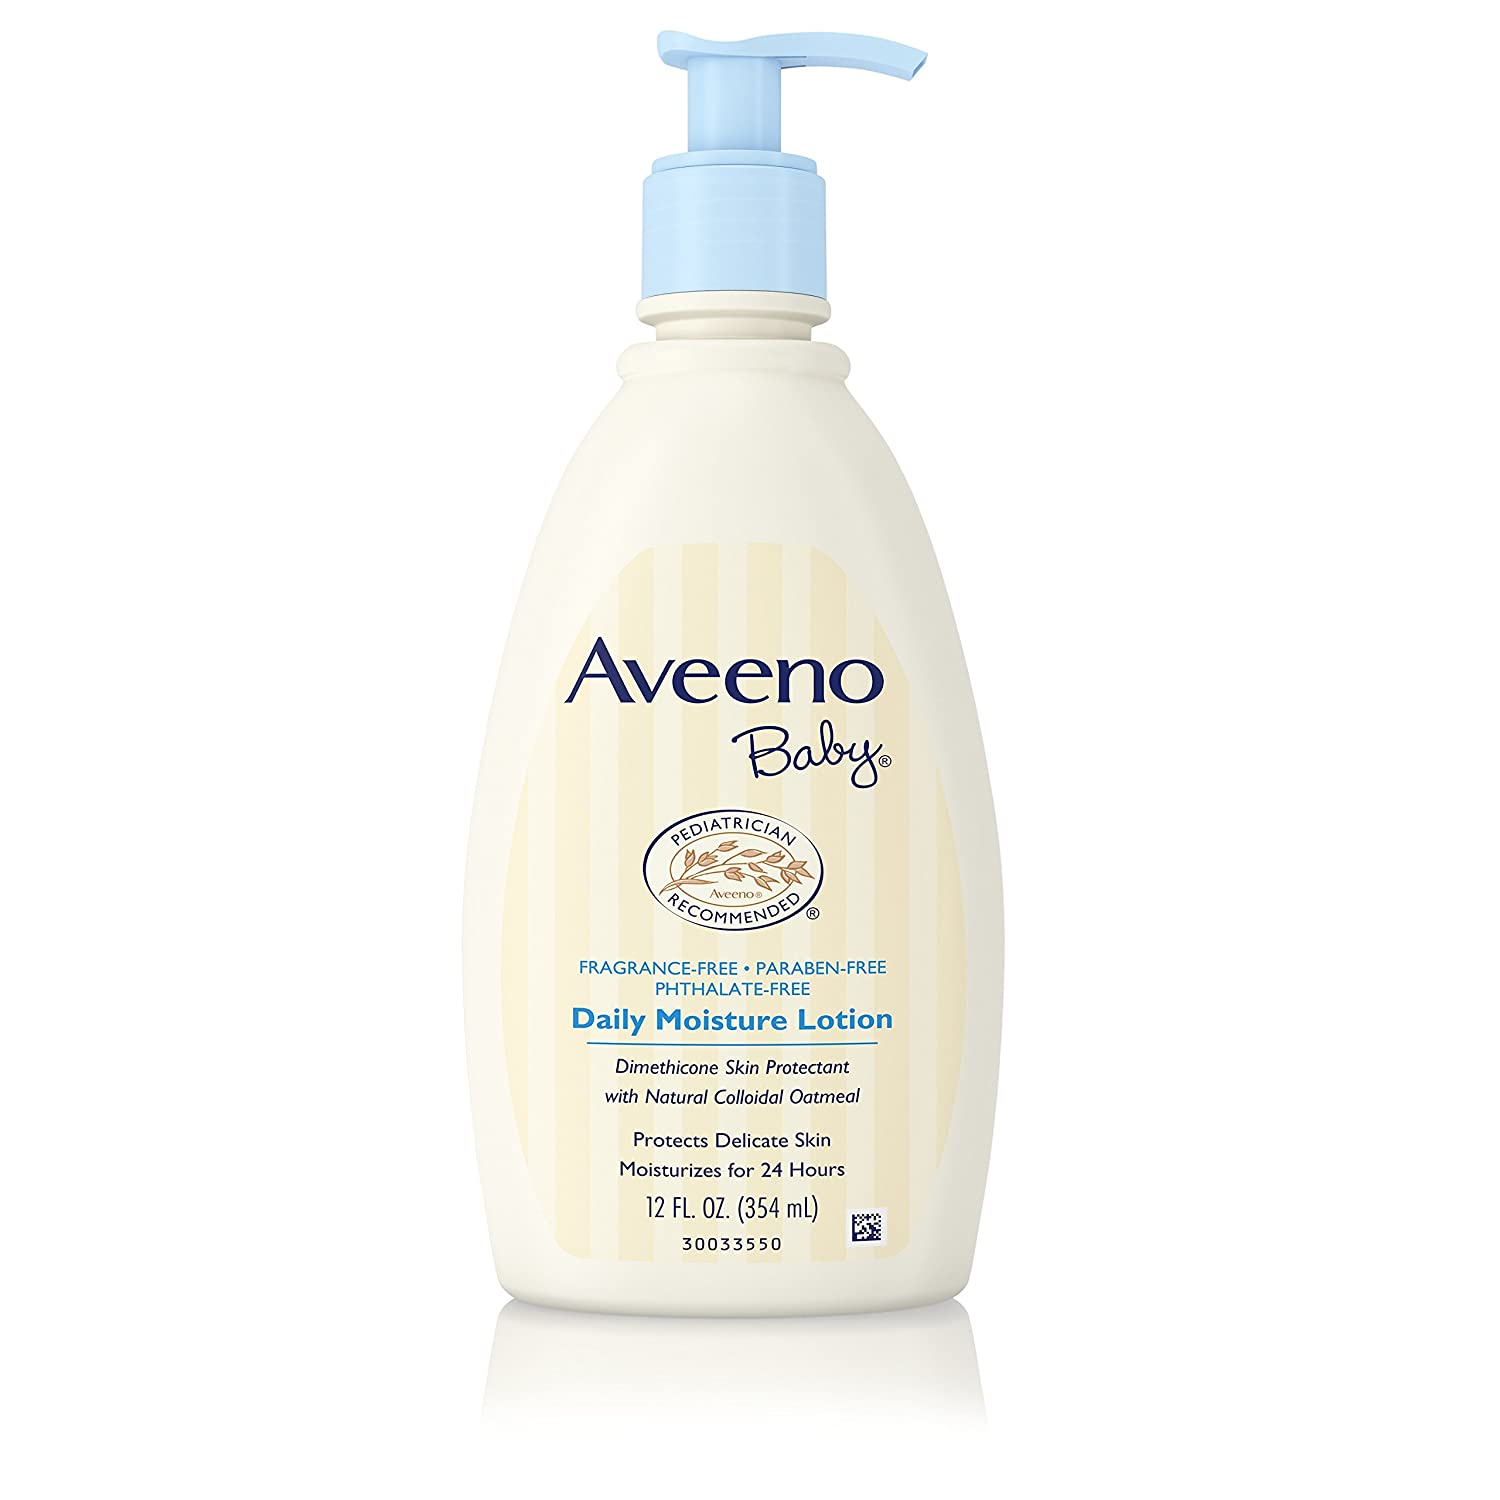 Aveeno Baby Daily Moisture Lotion with Natural Colloidal Oatmeal & Dimethicone, Fragrance-Free, 12 fl. oz (Pack of 6) Johnson & Johnson SLC 38137004229